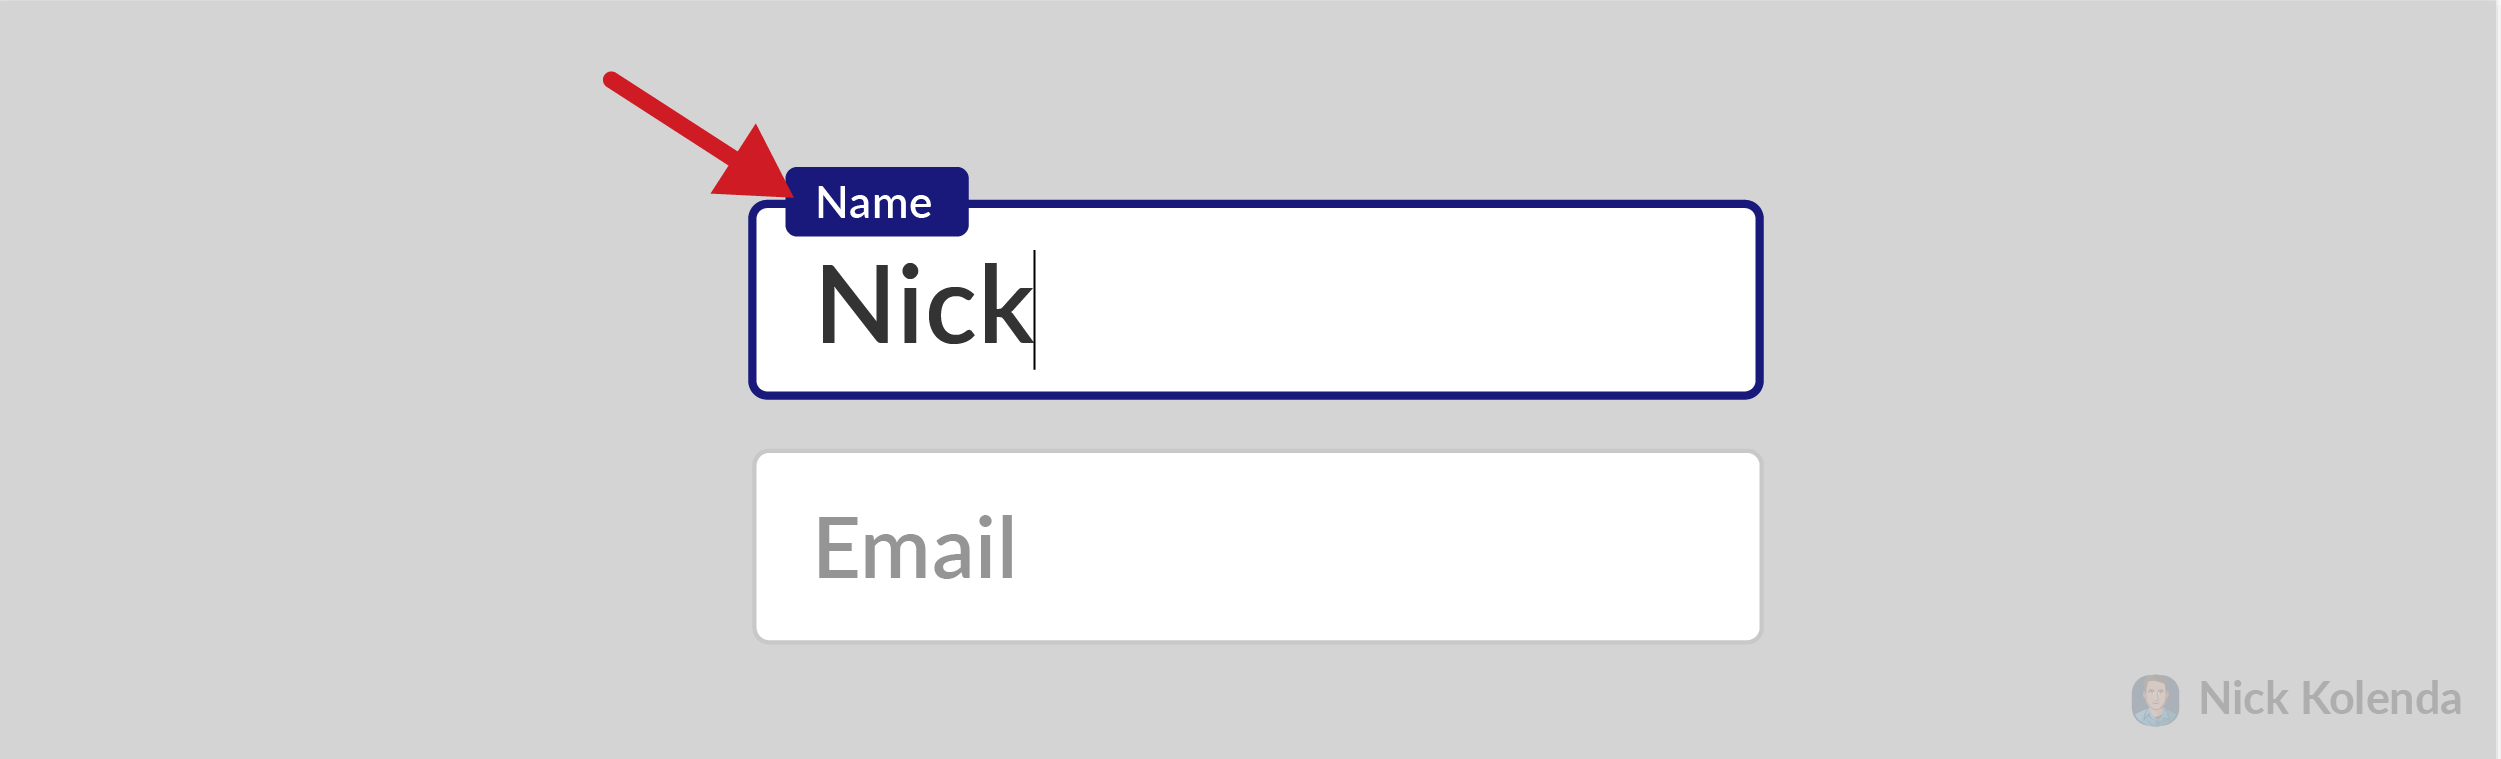 Name of input field above the field while user is typing in it